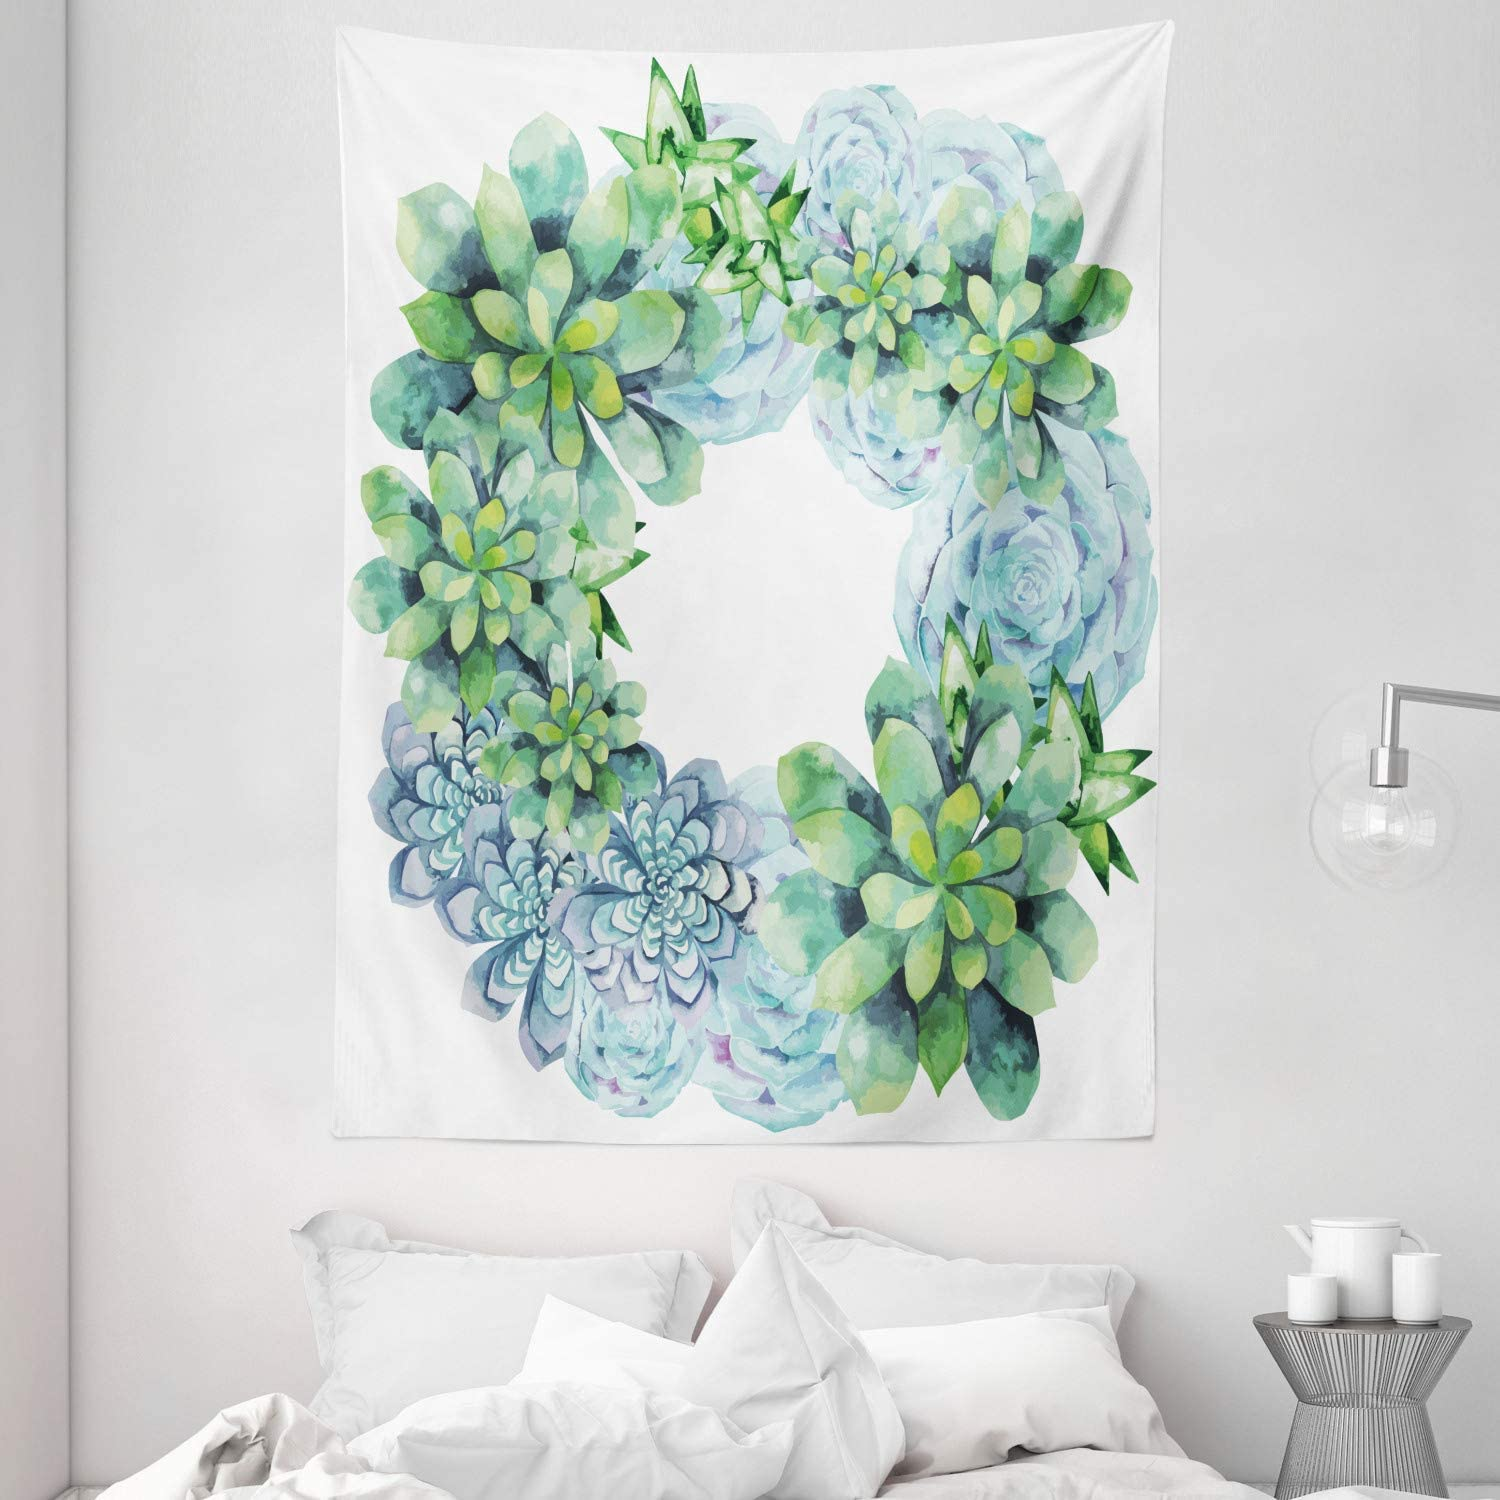 Max 69% OFF Ambesonne Finally resale start Succulent Tapestry Wreath Watercolor Circul